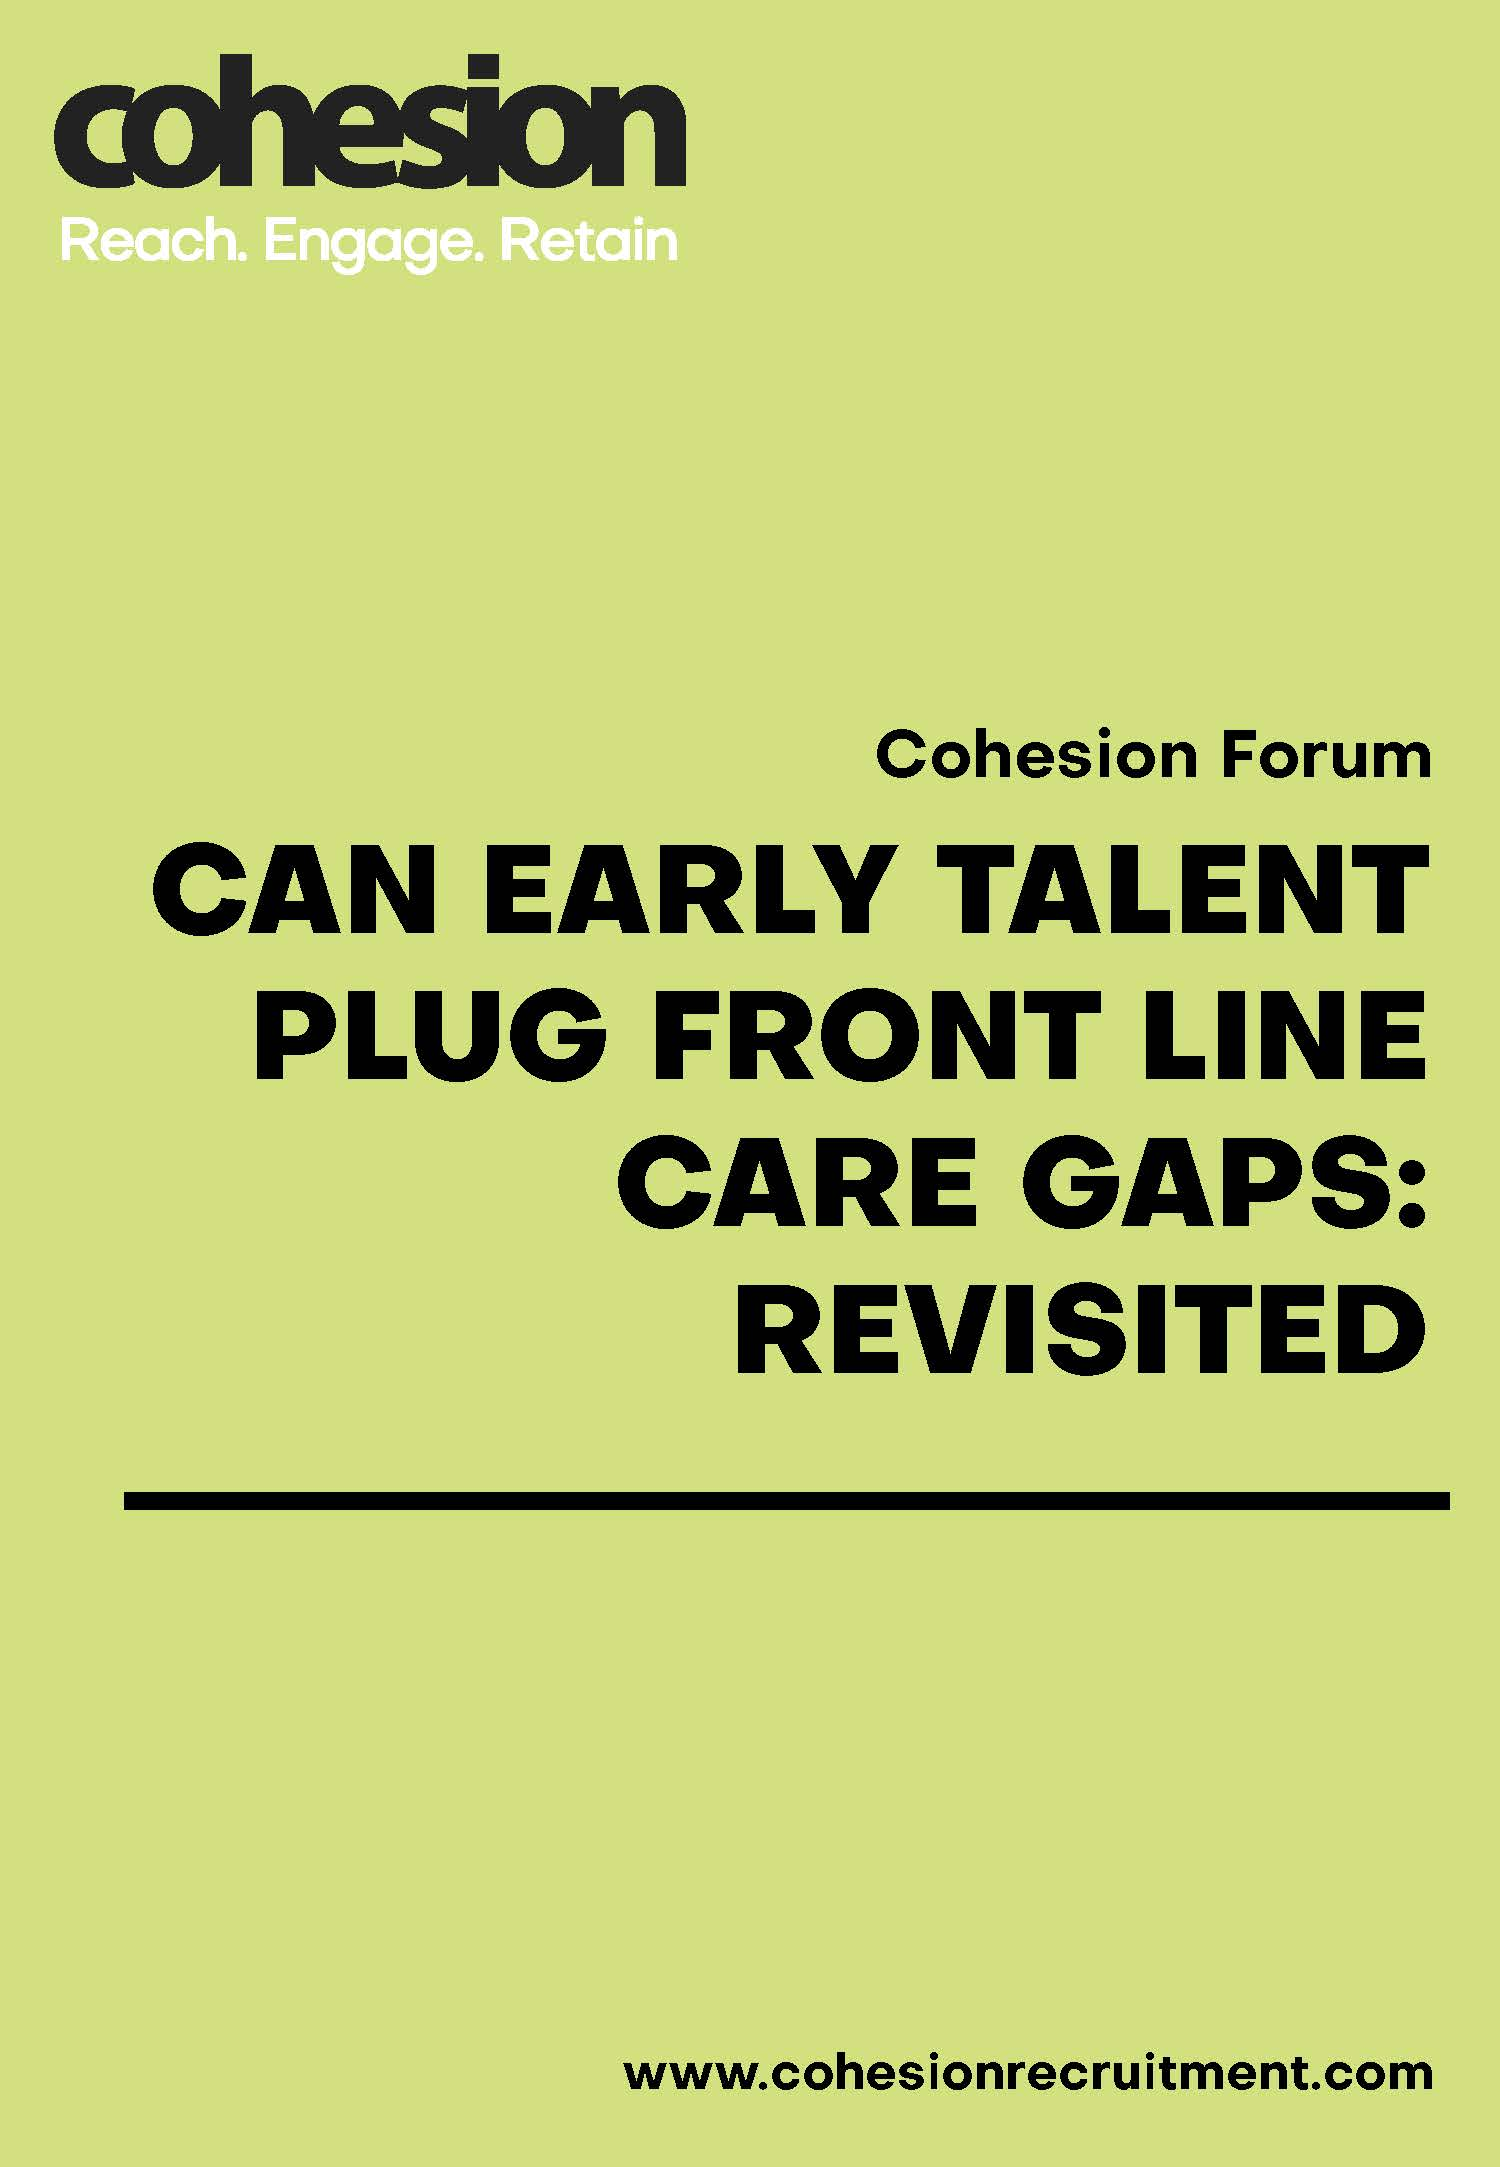 Can Early Talent Plug Front Line Care Gaps: Revisited